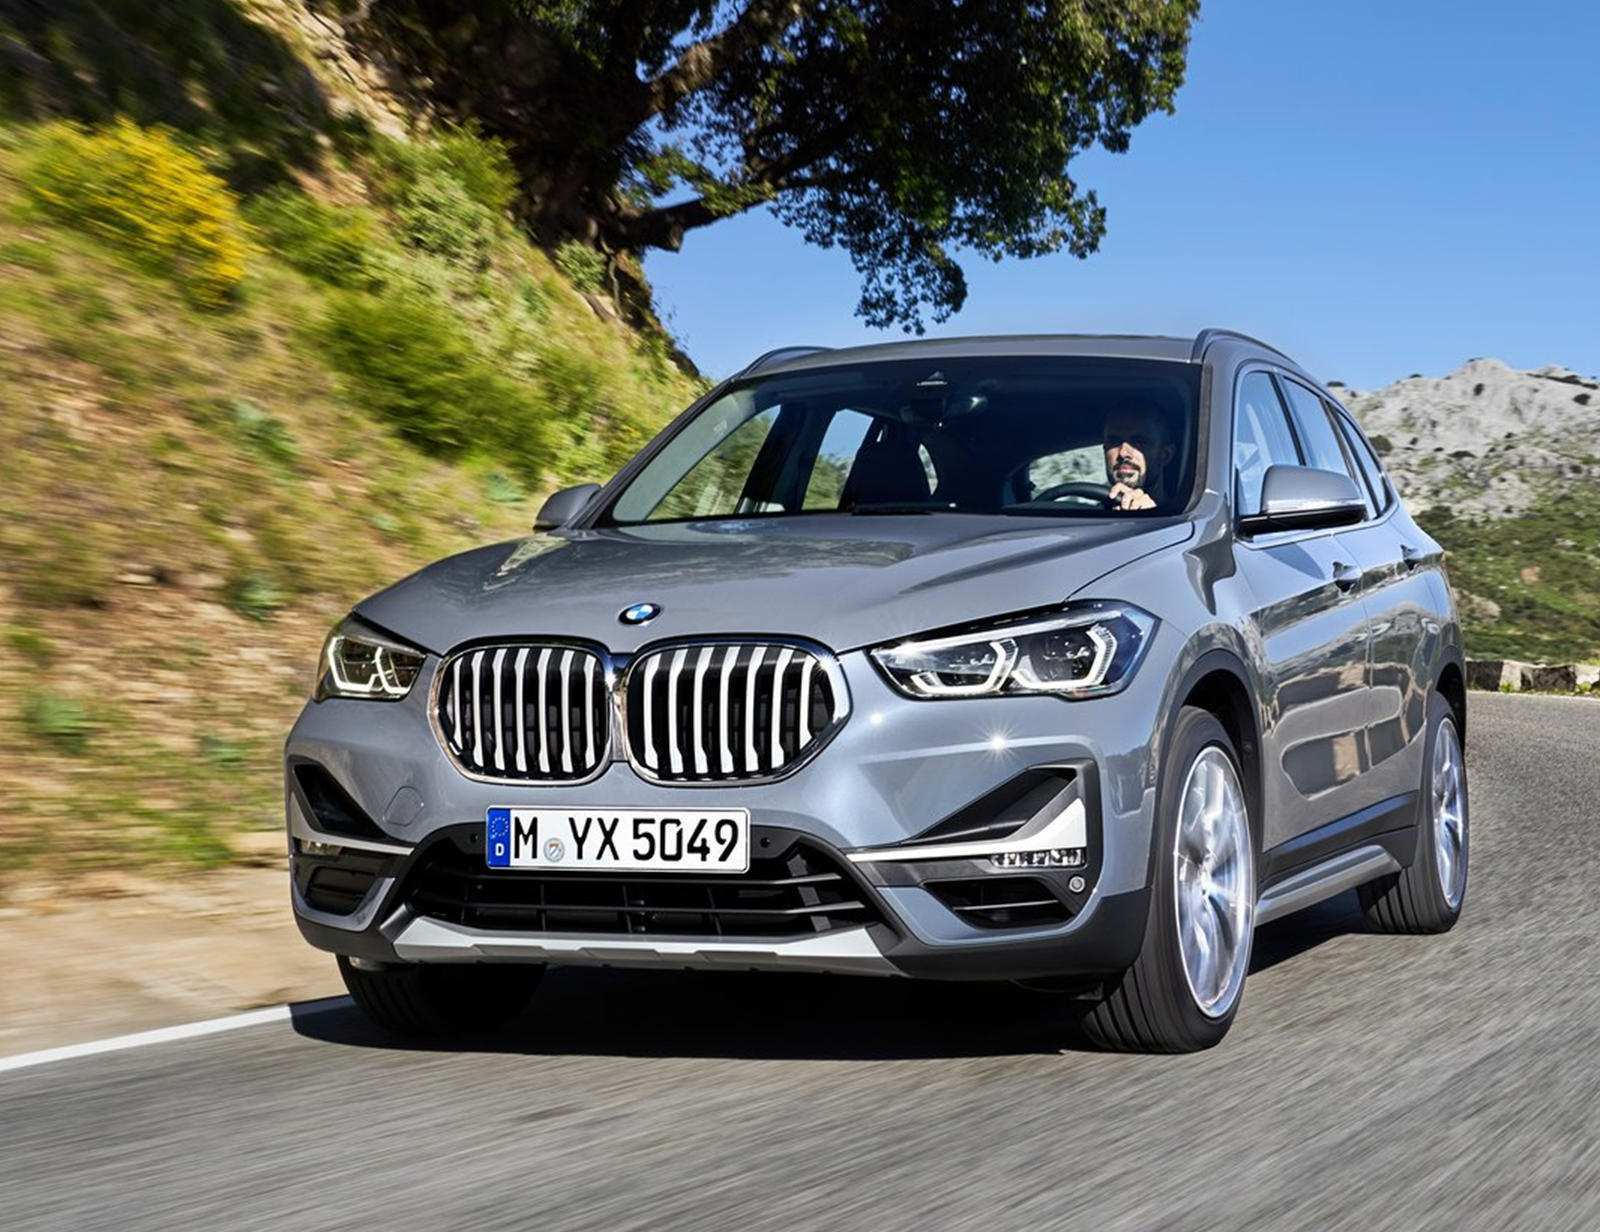 62 All New Bmw X1 2020 Facelift Exterior